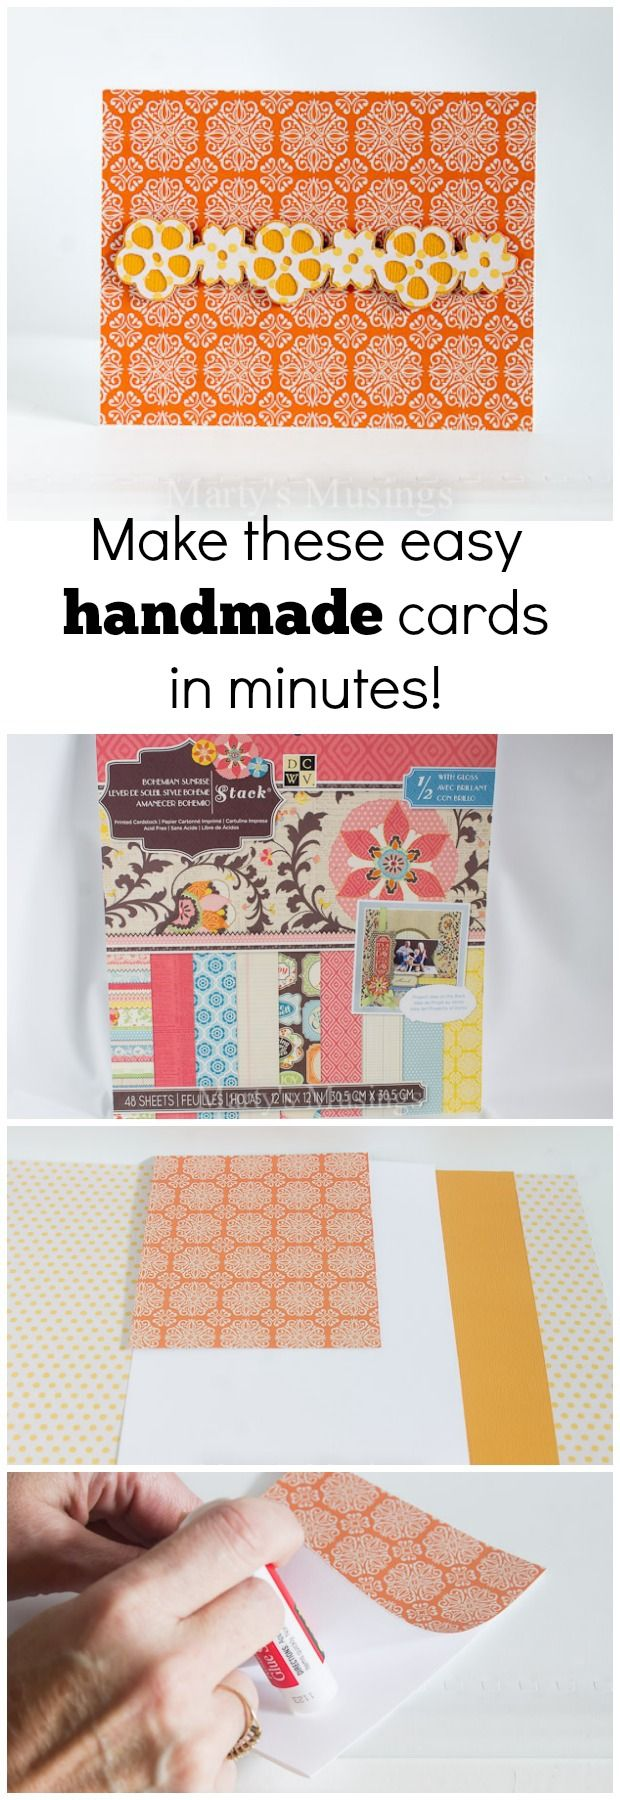 Scrapbook ideas without pictures - 15 Best Ideas About Easy Handmade Cards On Pinterest Handmade Cards Handmade Birthday Cards And Simple Handmade Cards